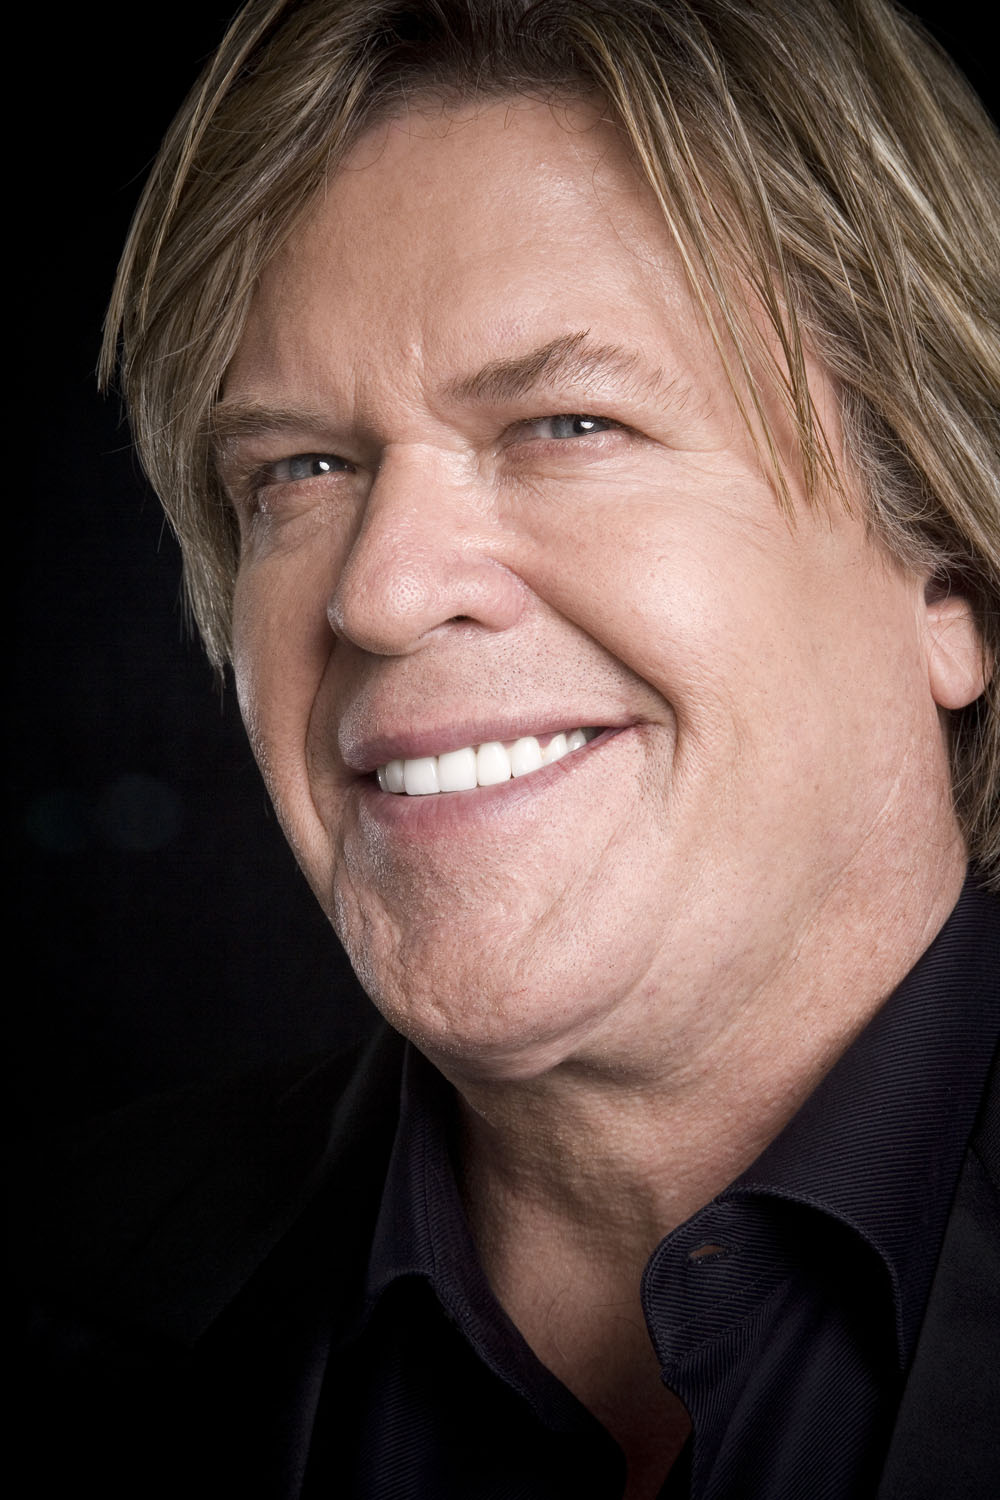 File:RON WHITE 4.jpg - Wikipedia, the free encyclopedia